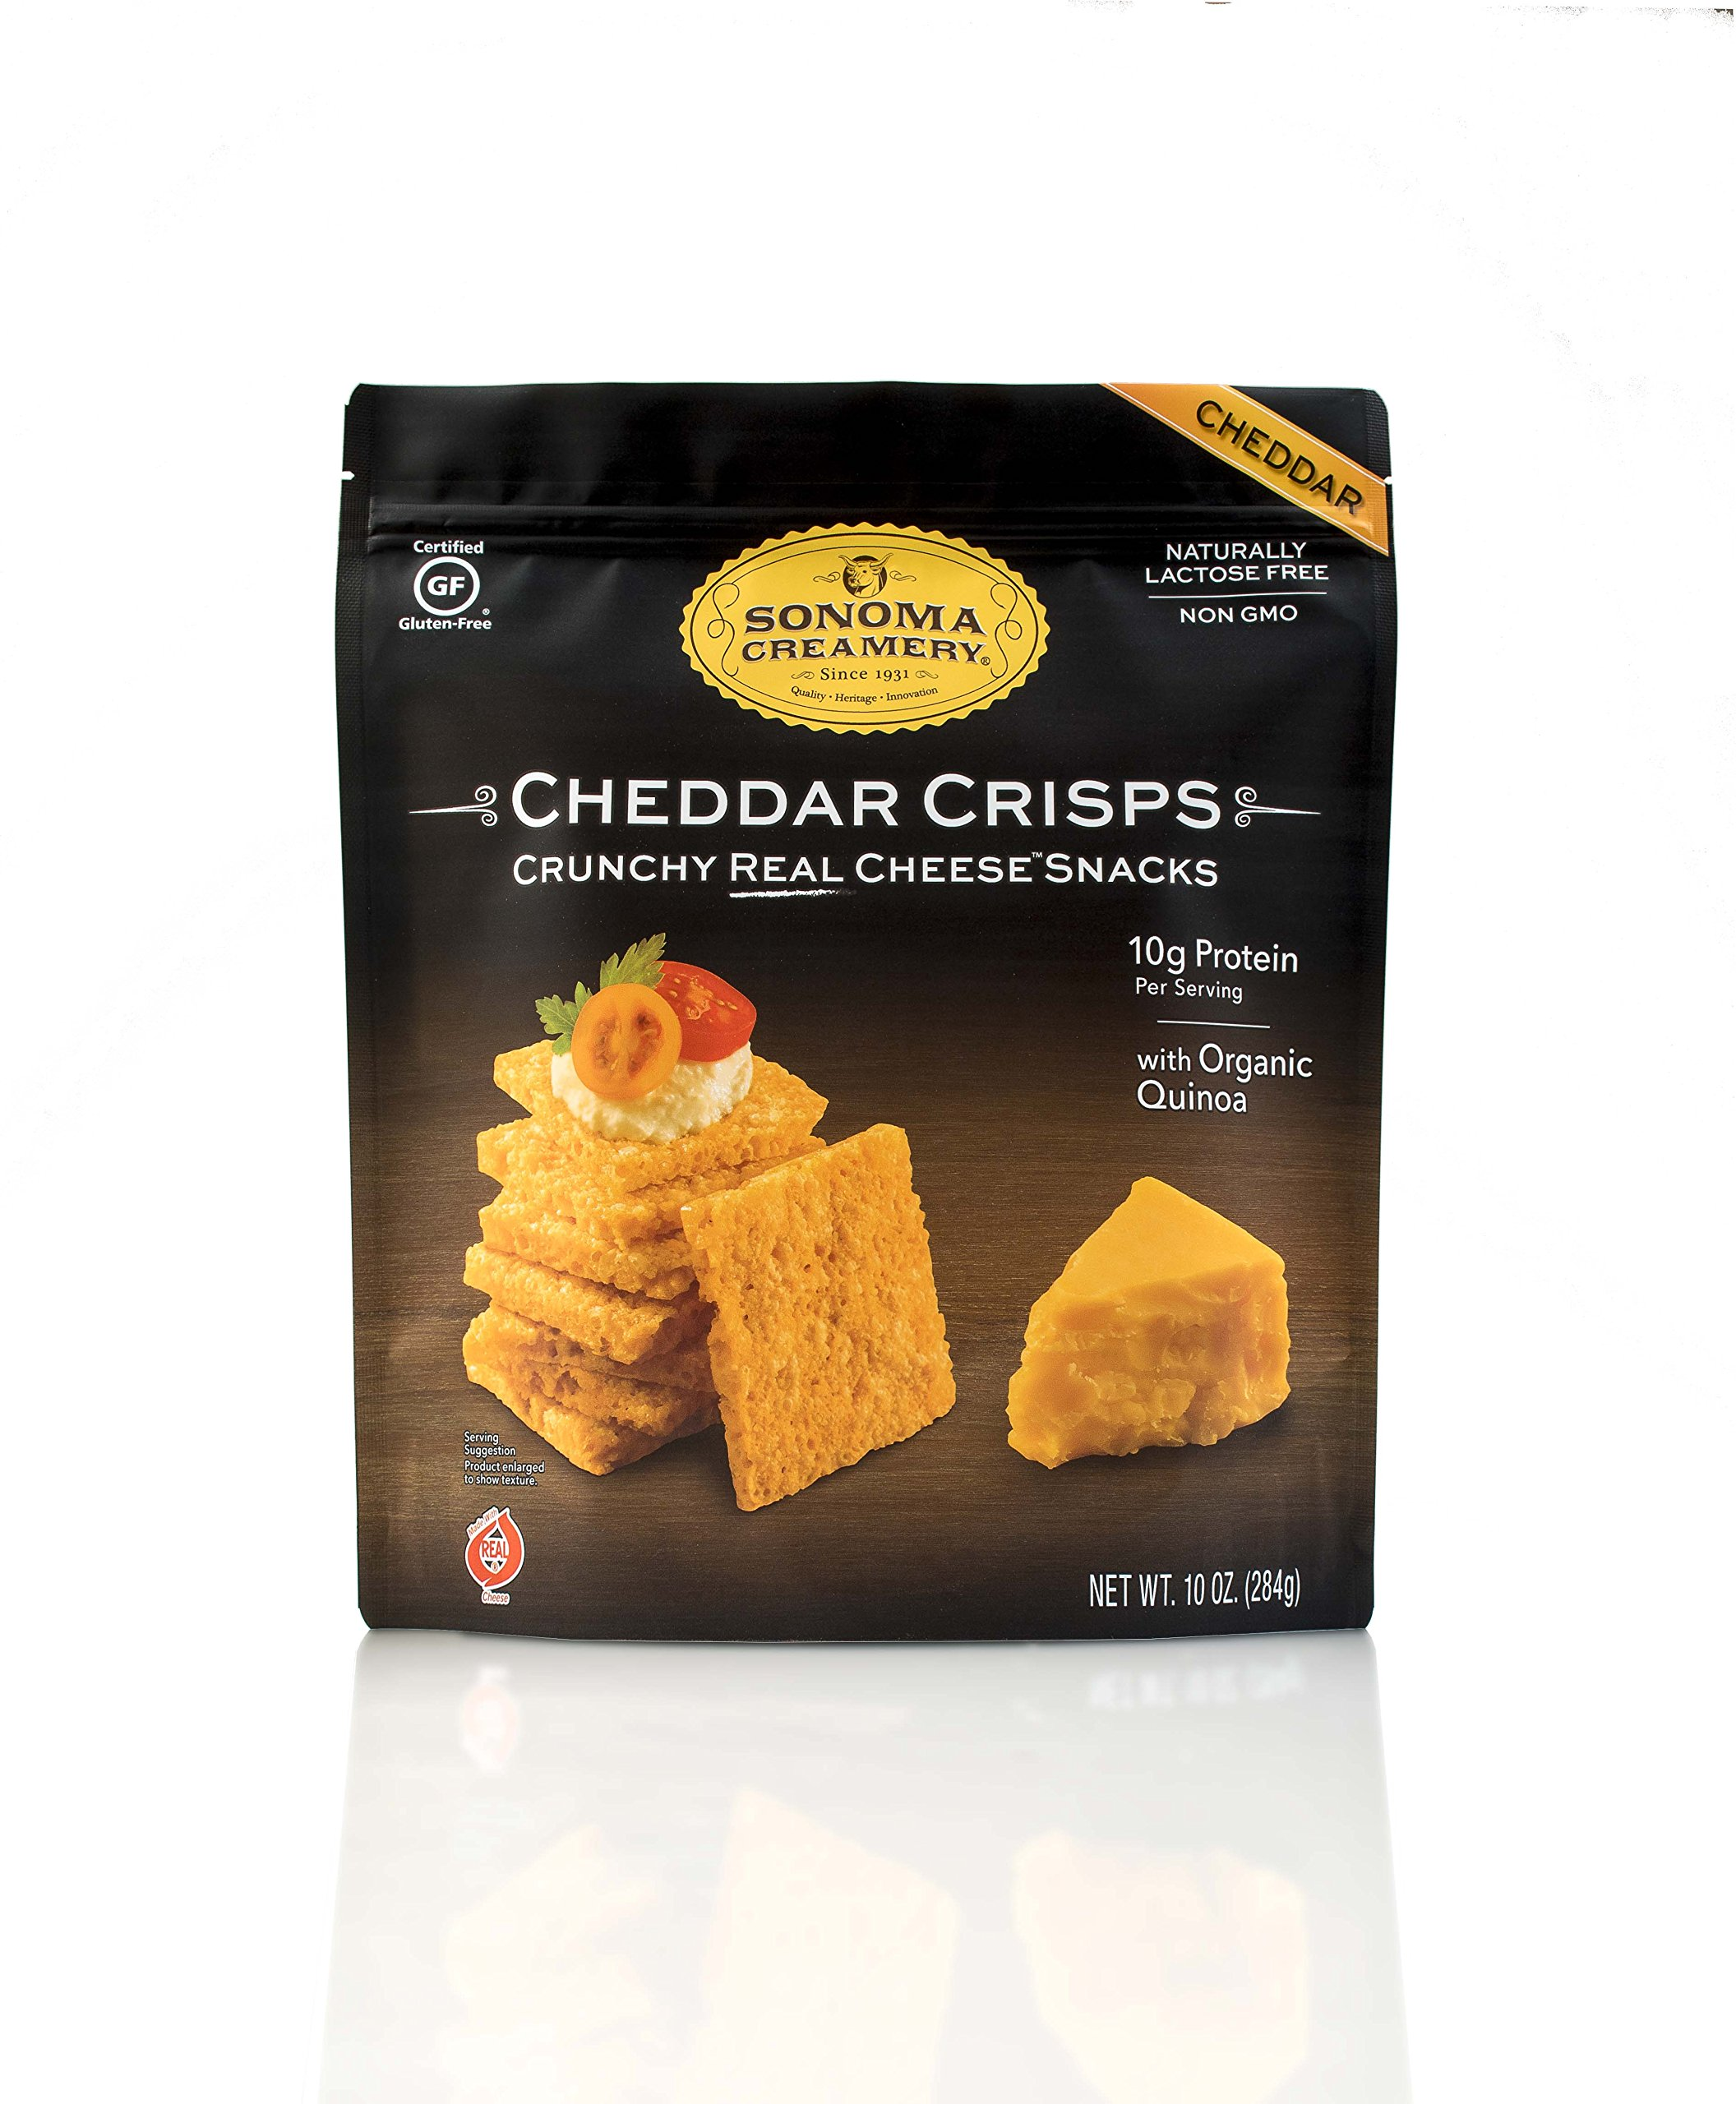 15 Guilt-Free, Cheesy Snacks from The Store